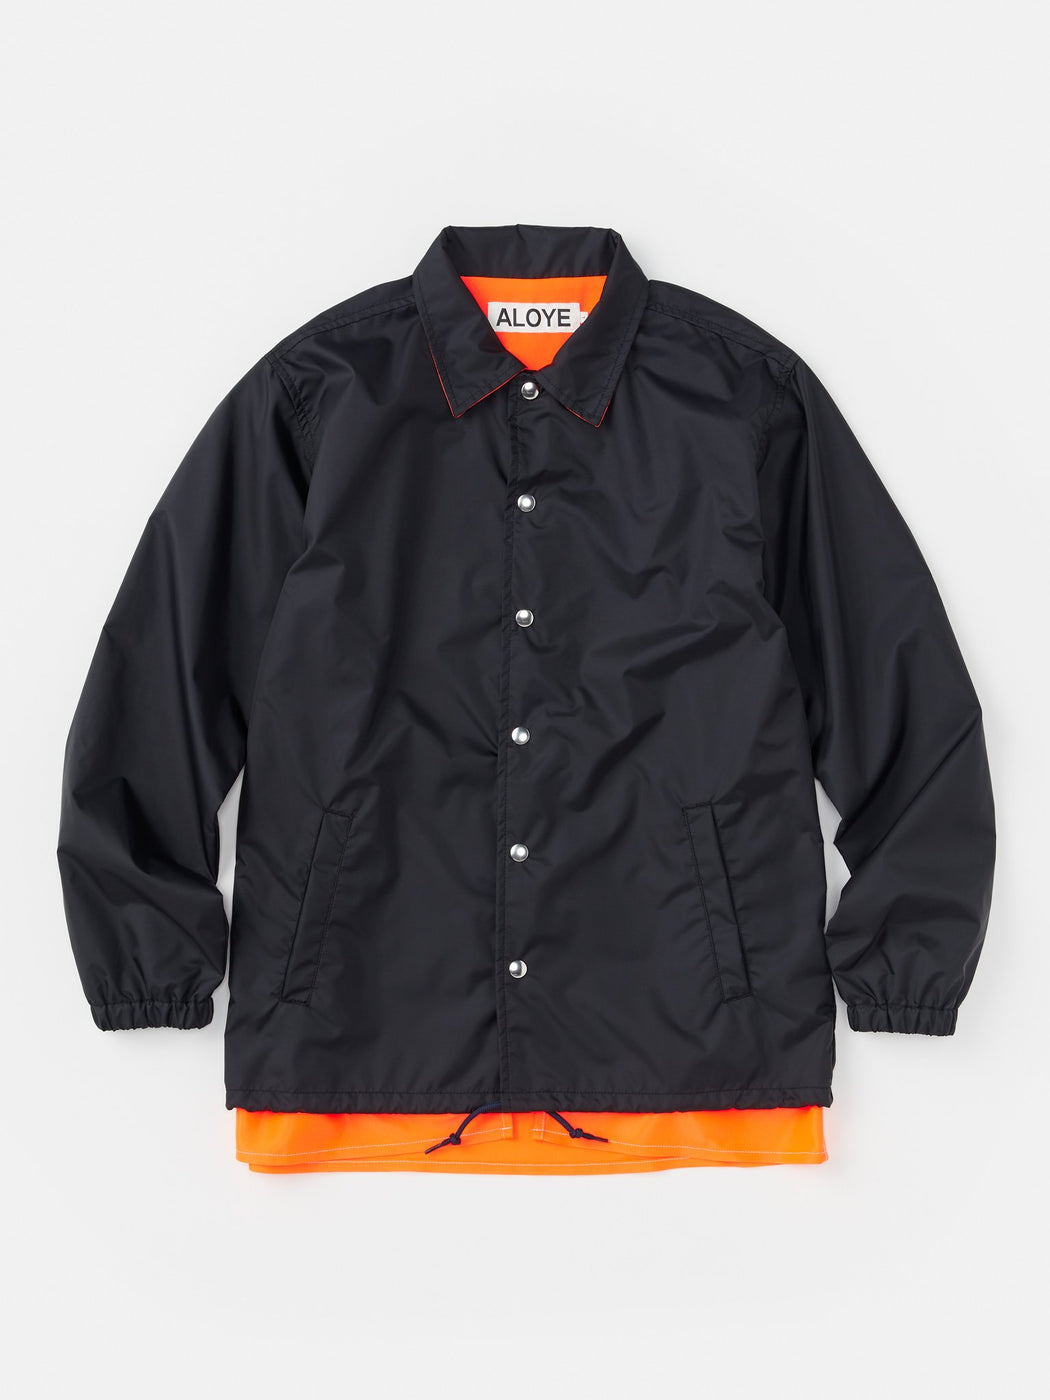 ALOYE Color Blocks Coach Jacket Black